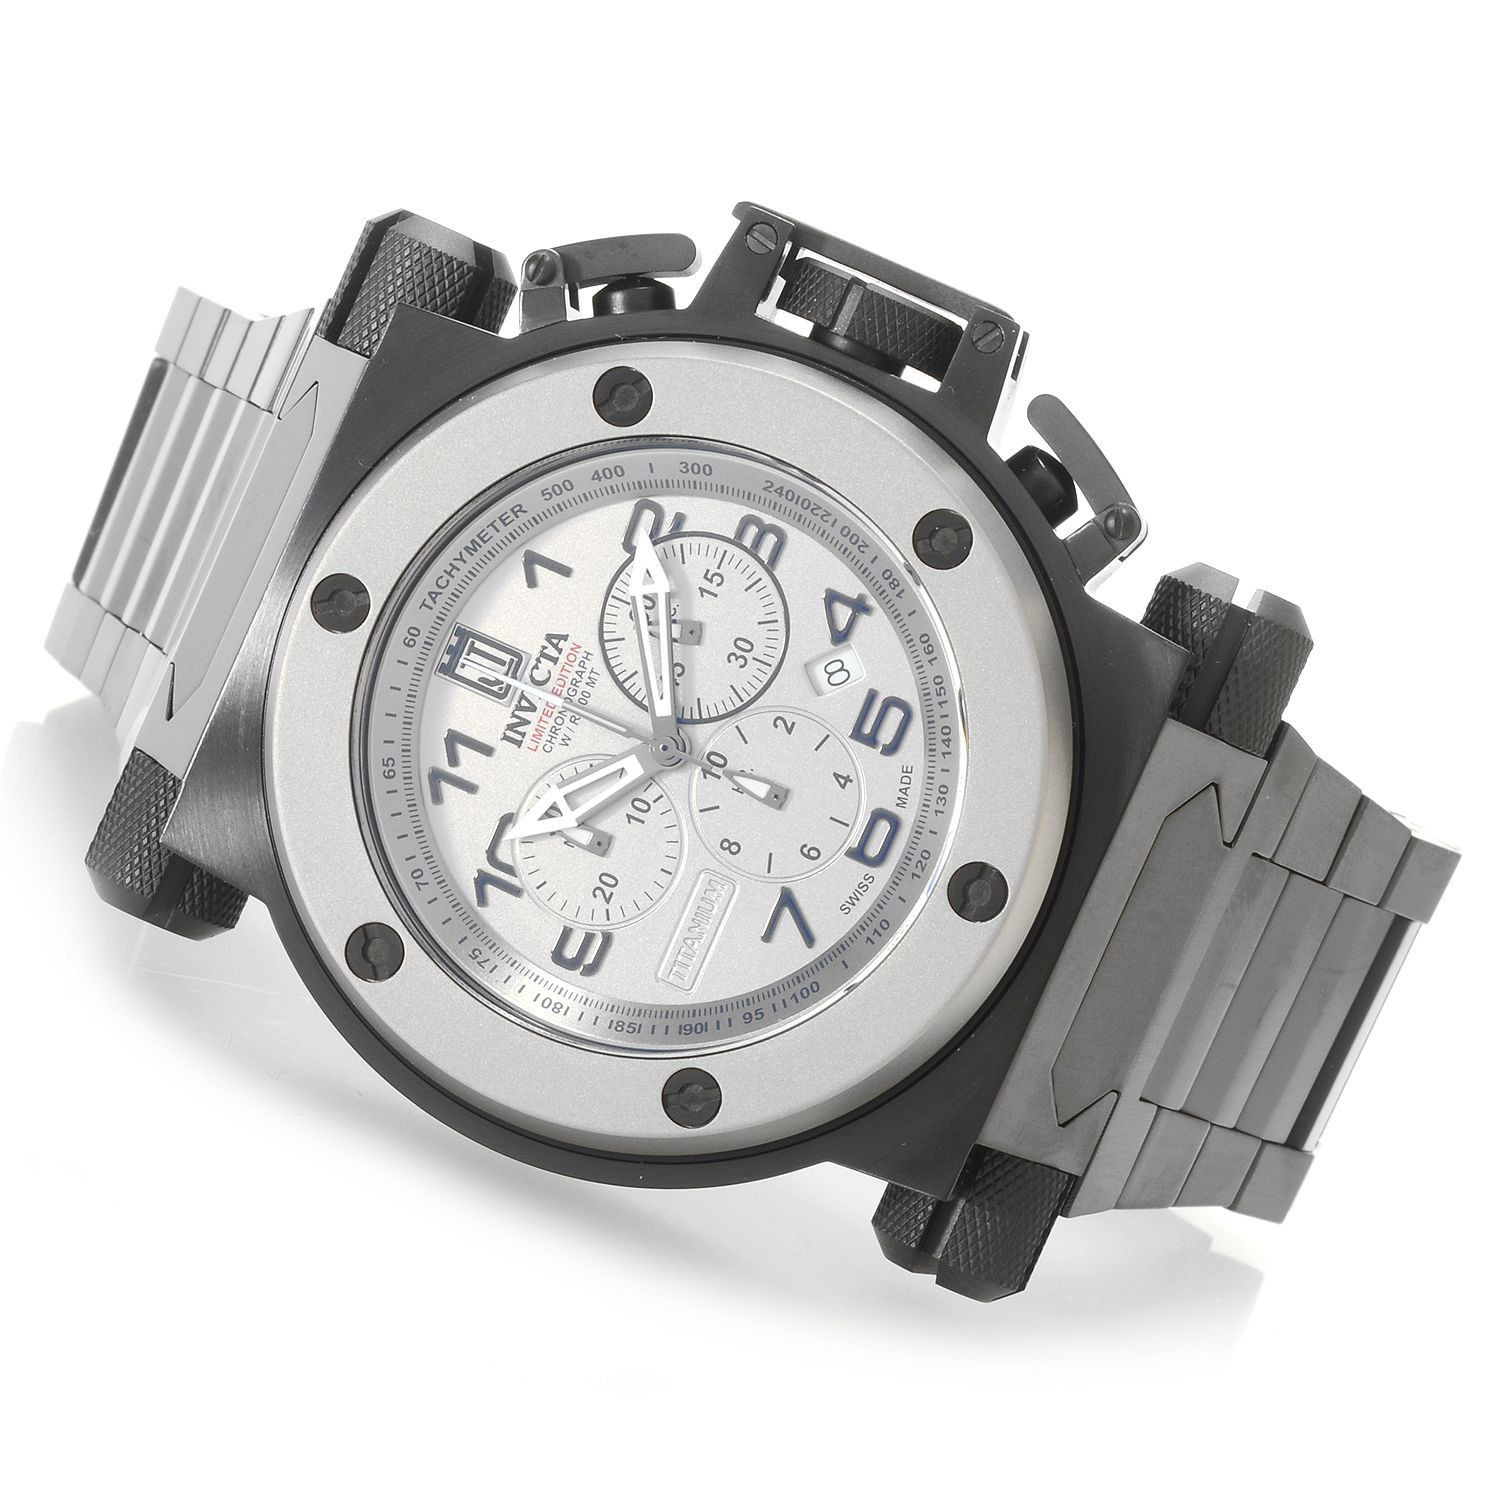 Invicta 14515 Titanium Limited Edition